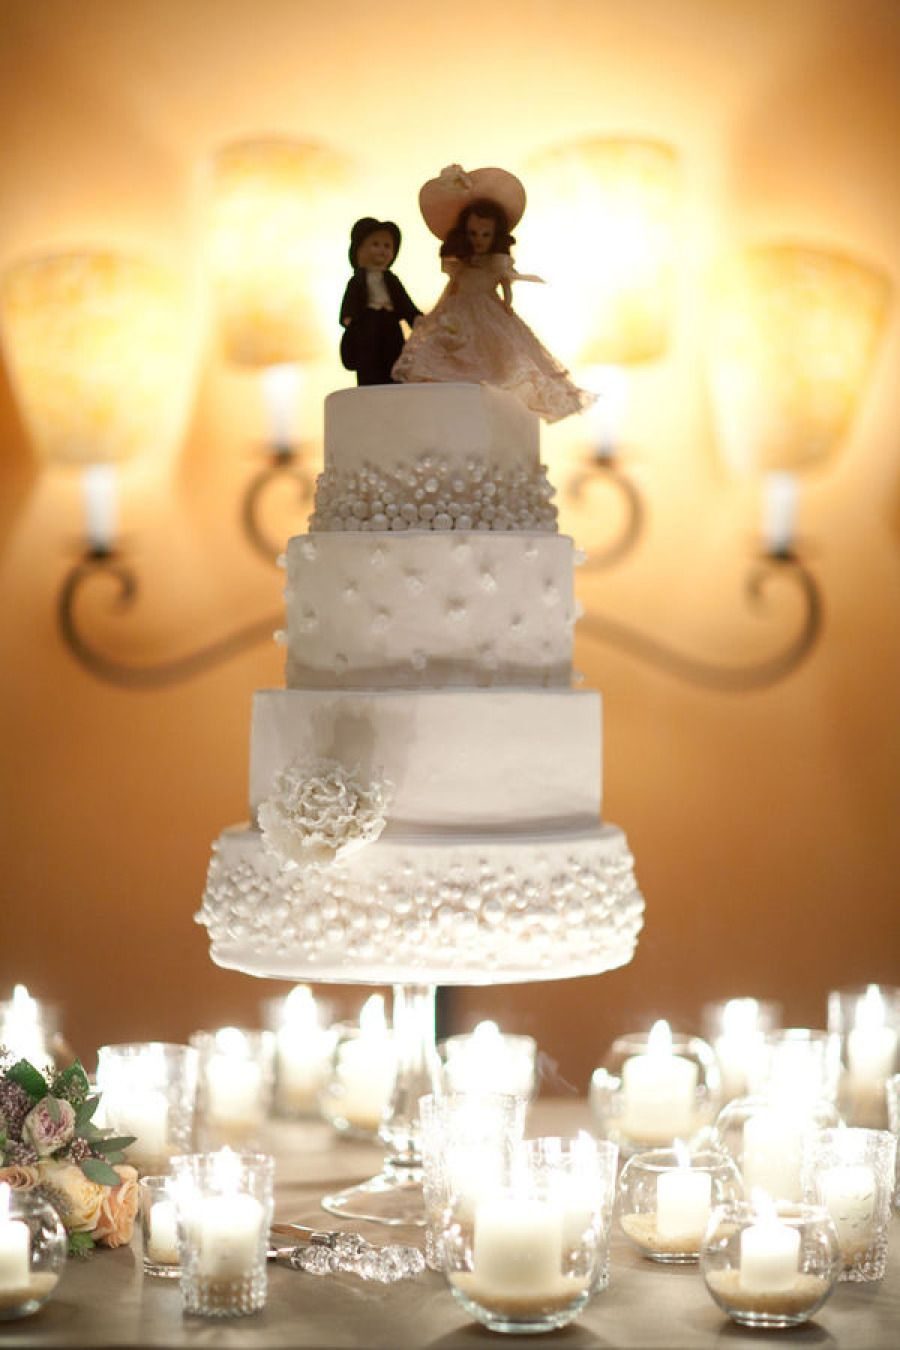 25 Jaw Dropping Beautiful Wedding Cake Ideas Wedding